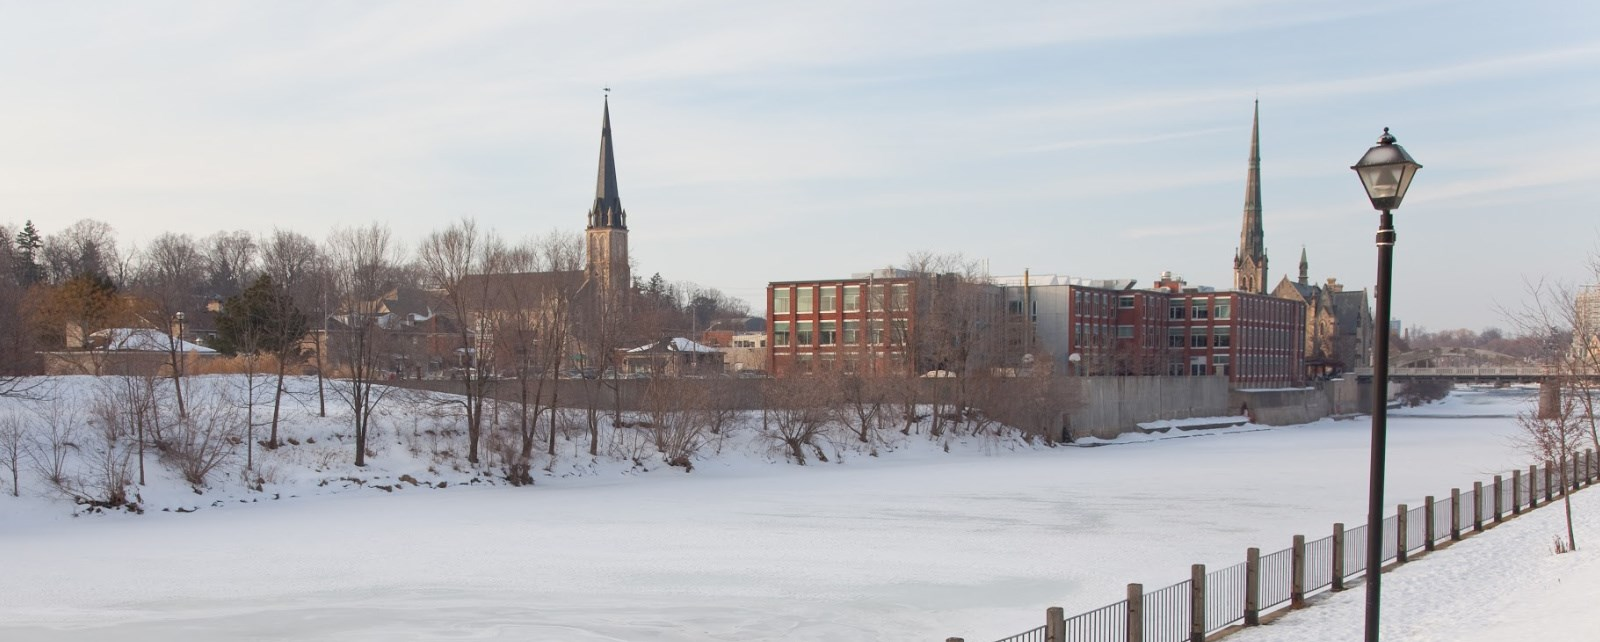 Winter image of the Grand River in Galt